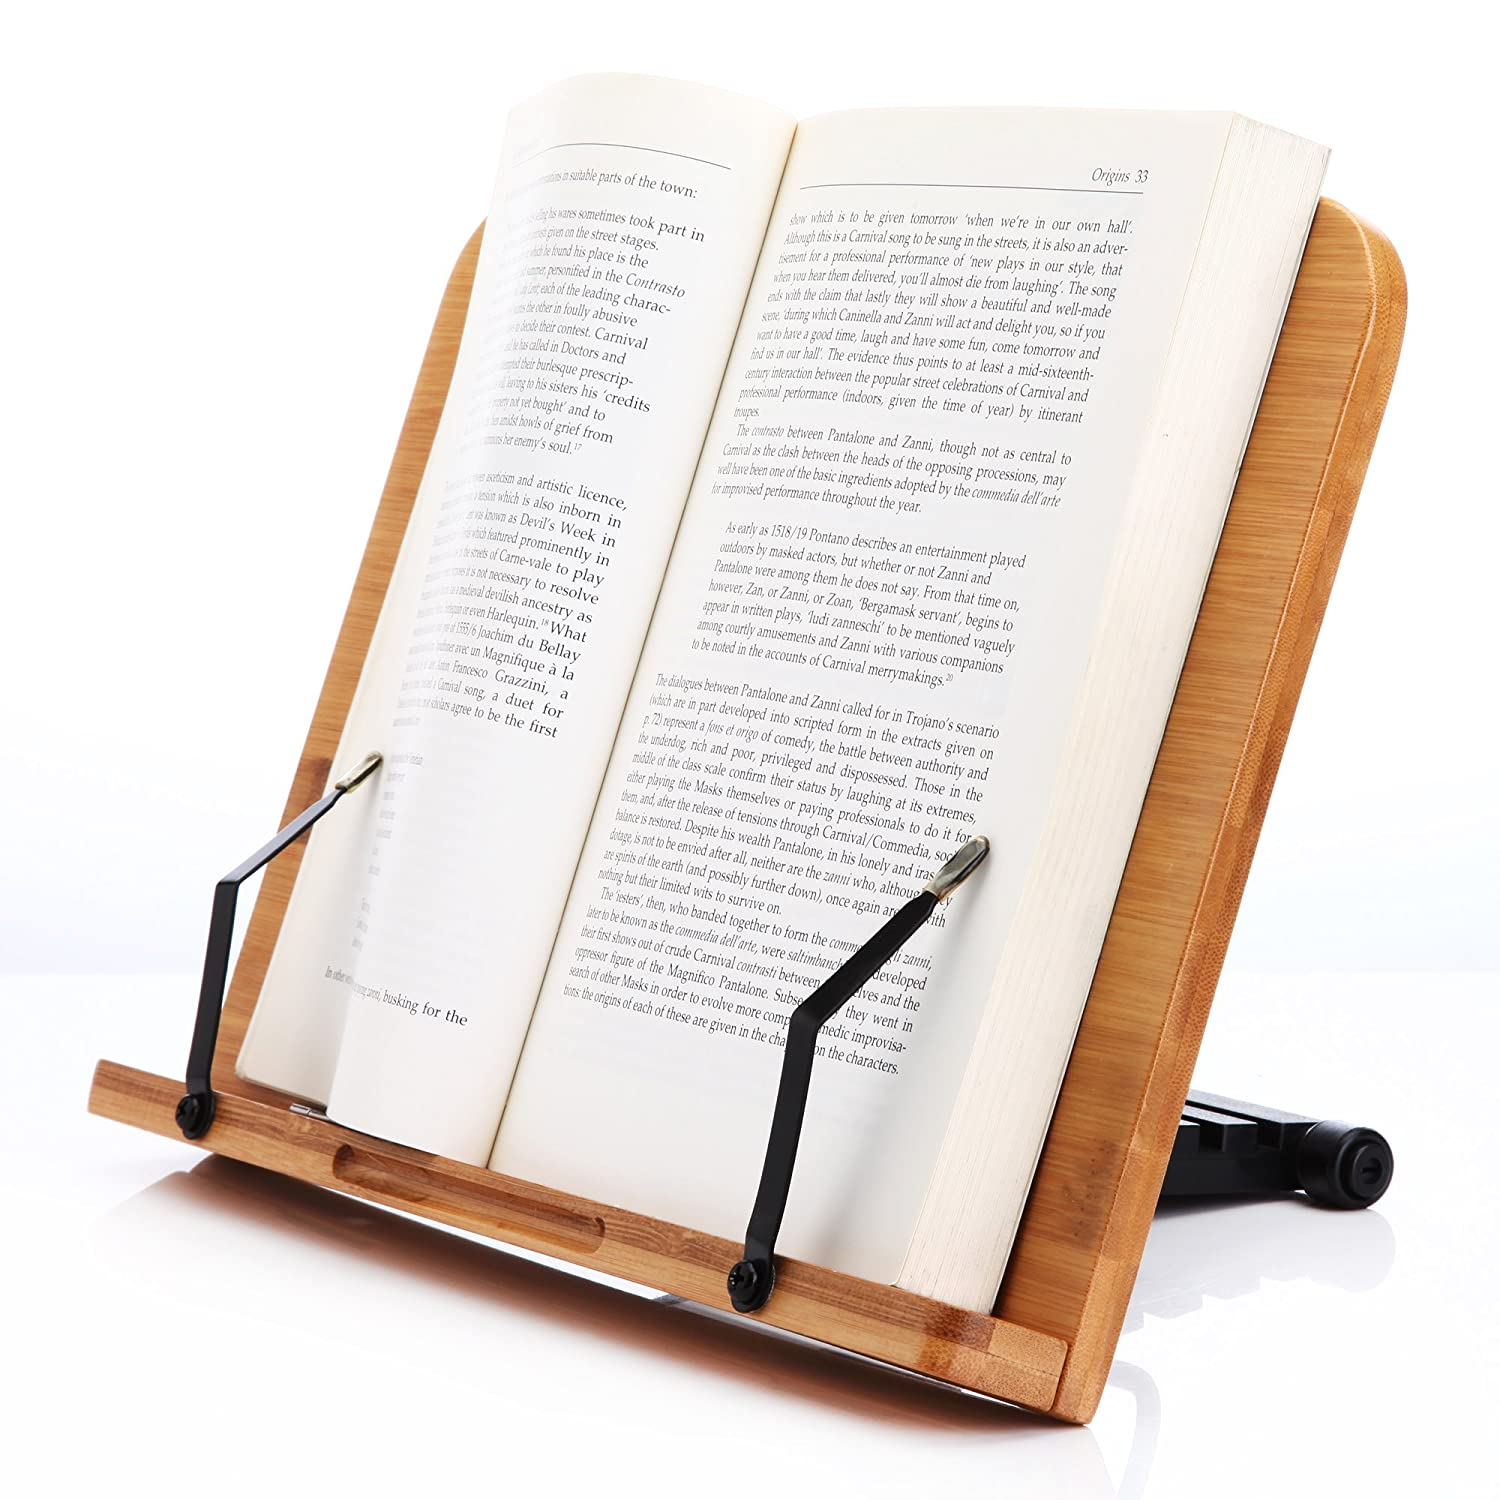 readaeer bamboo reading rest cook book document stand